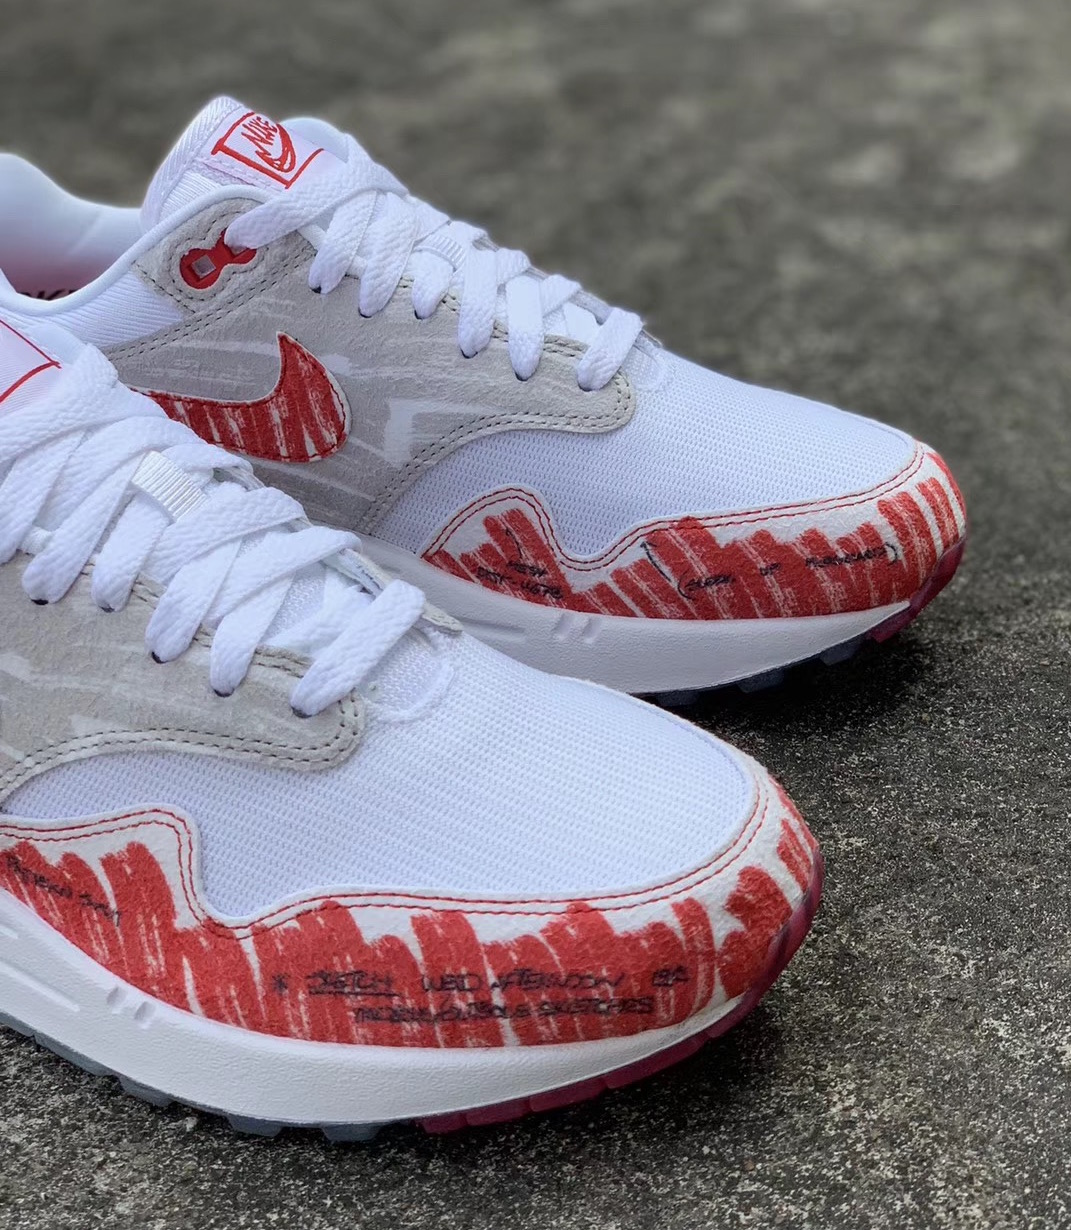 Nike Air Max 1 Tinker Sketch Release Date Info